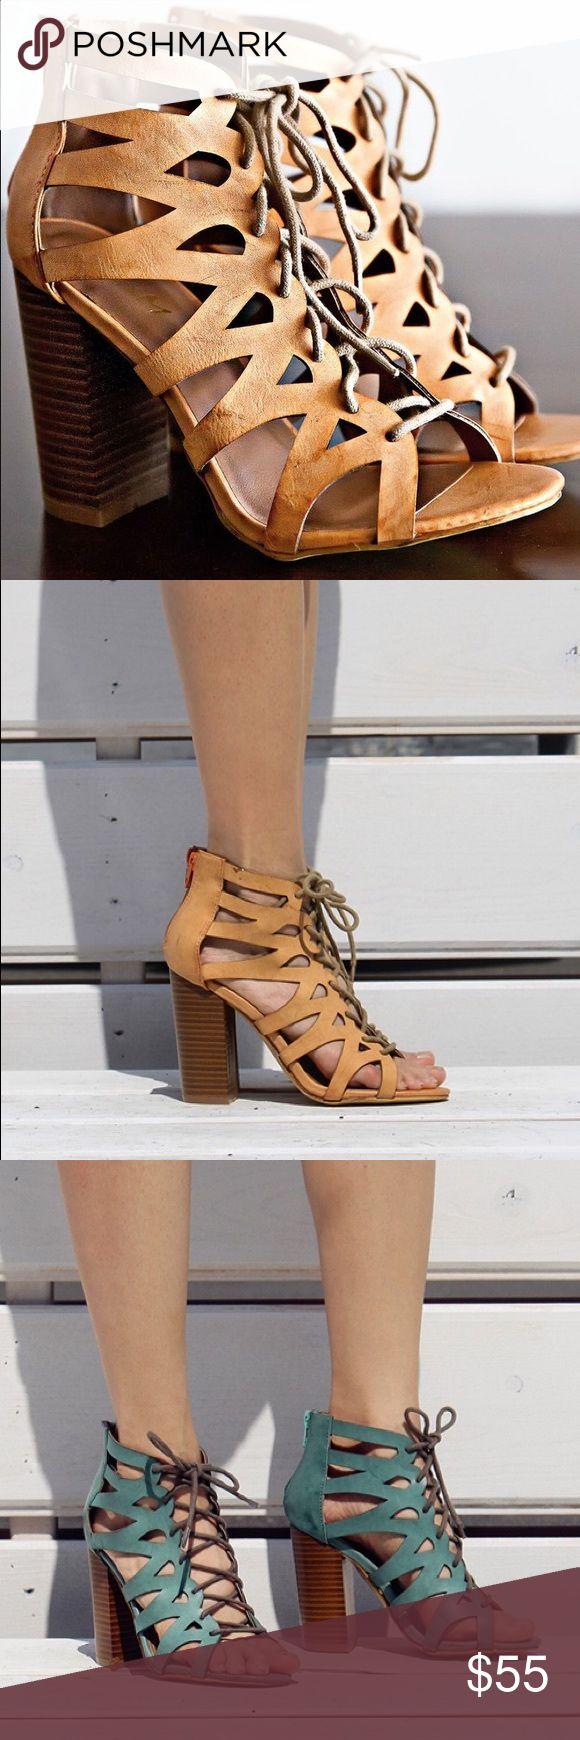 Ladies high top lace up chunky heels sandals. NIB Summer is here! Walk in style with this stylish sandal, super comfy, hot color, brand new in box, man made material, 3-4 inches hells, true to size. Available in torques and and rose colors. NO TRADES shoeroom21 boutique Shoes Heels